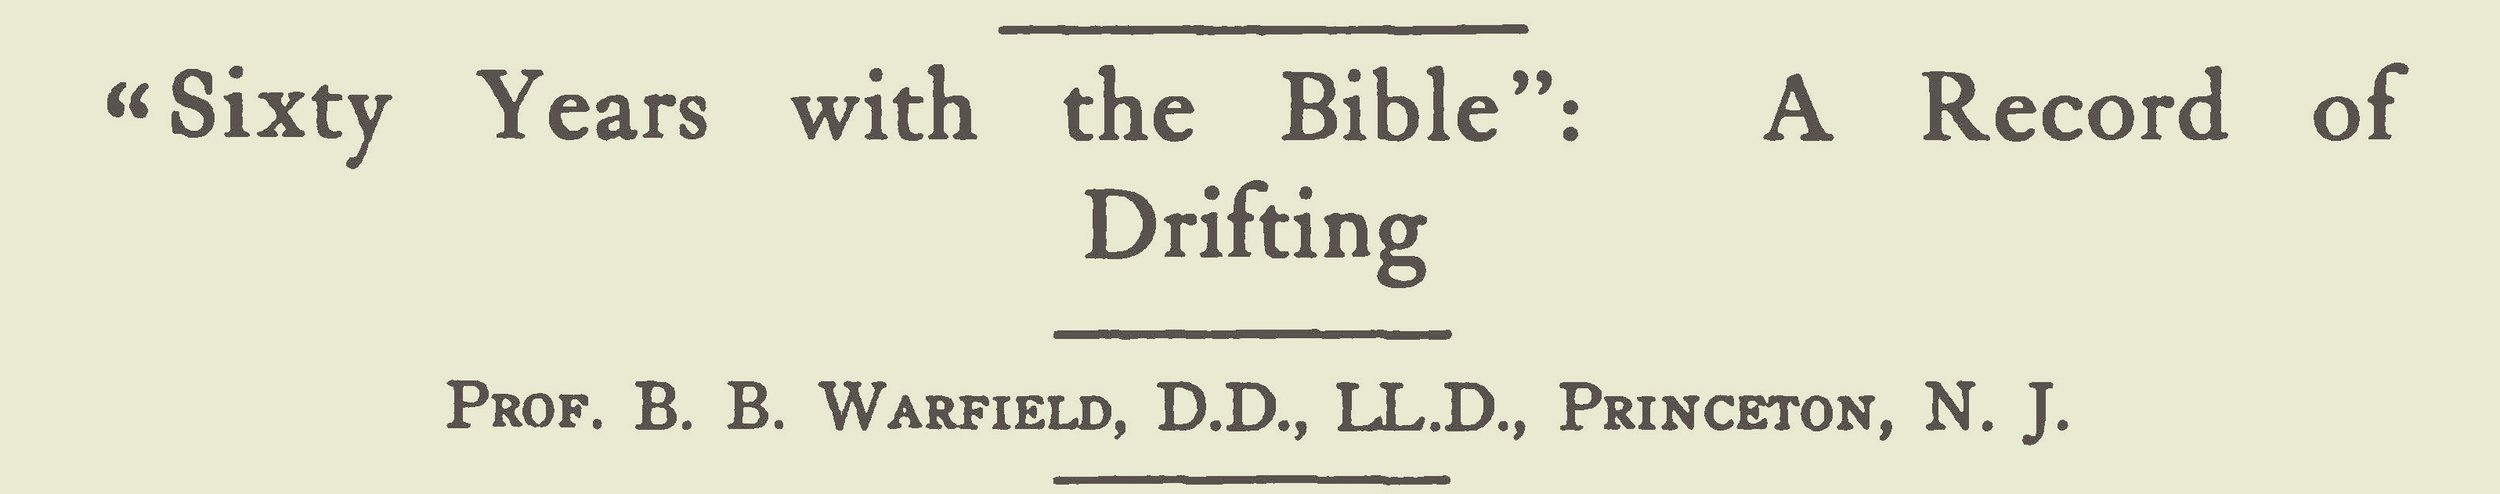 Warfield, Benjamin Breckinridge, Sixty Years With the Bible Title Page.jpg